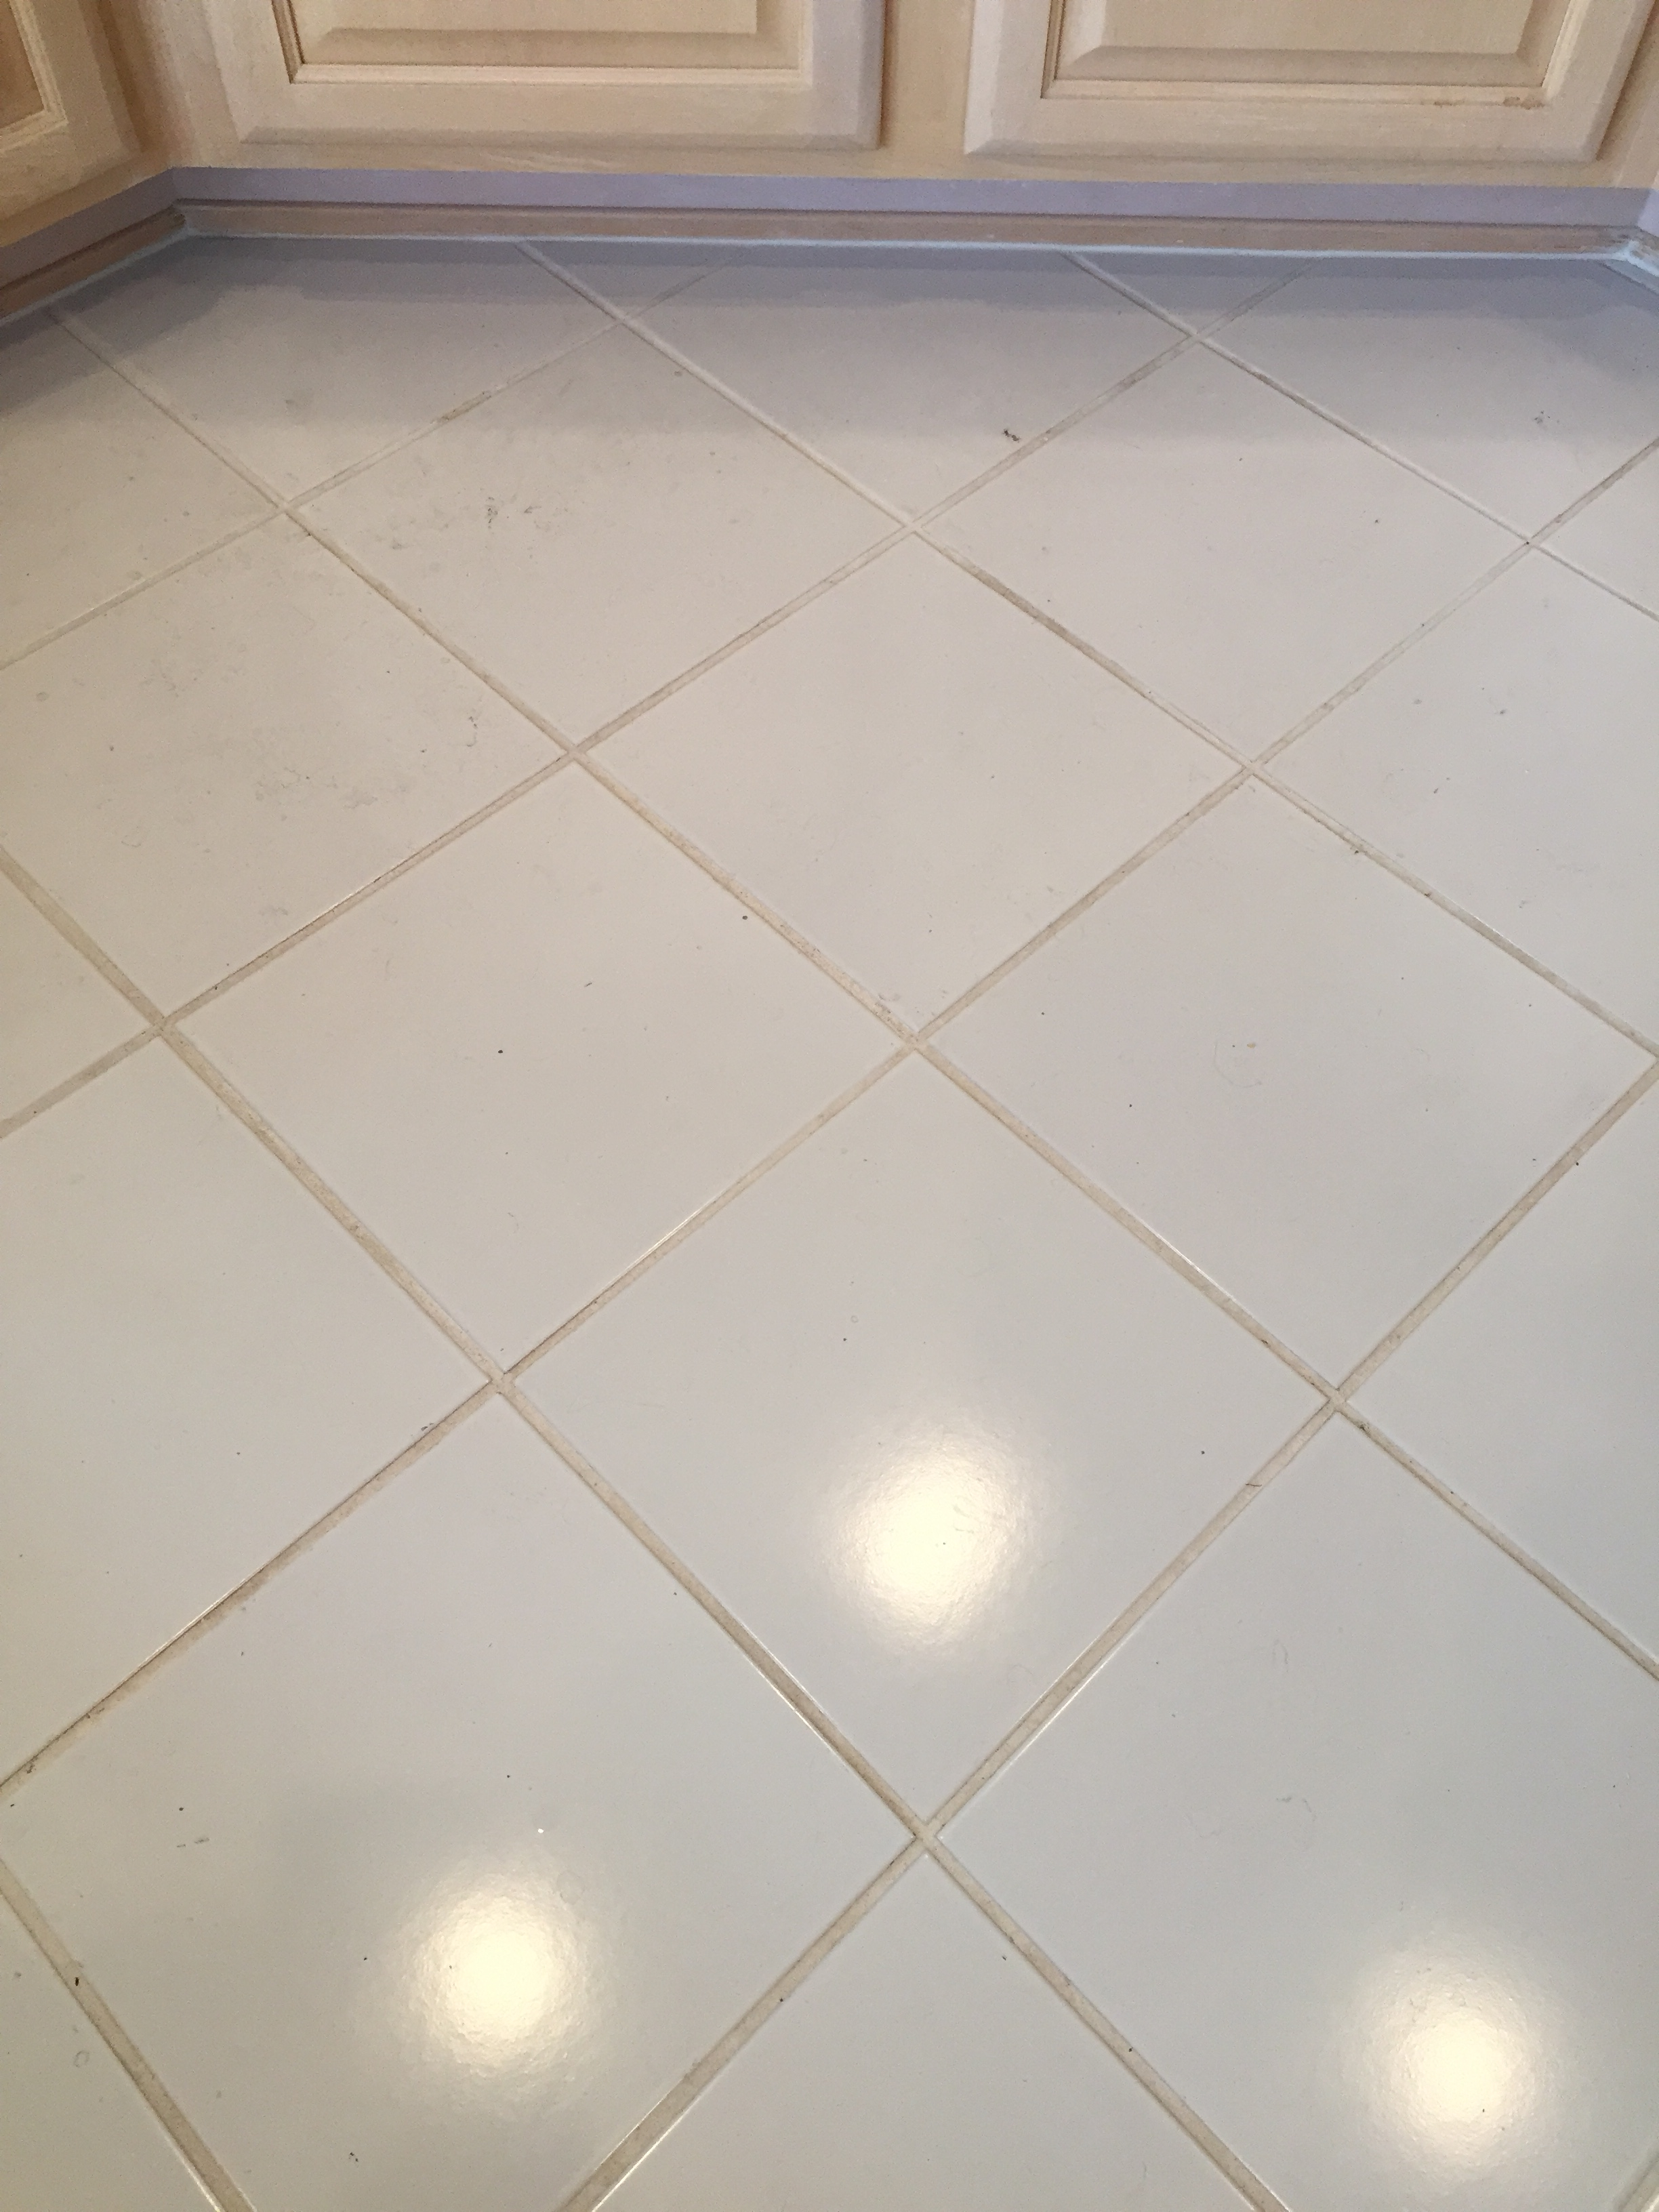 Porcelain Floor Tile Sealer Matttroy